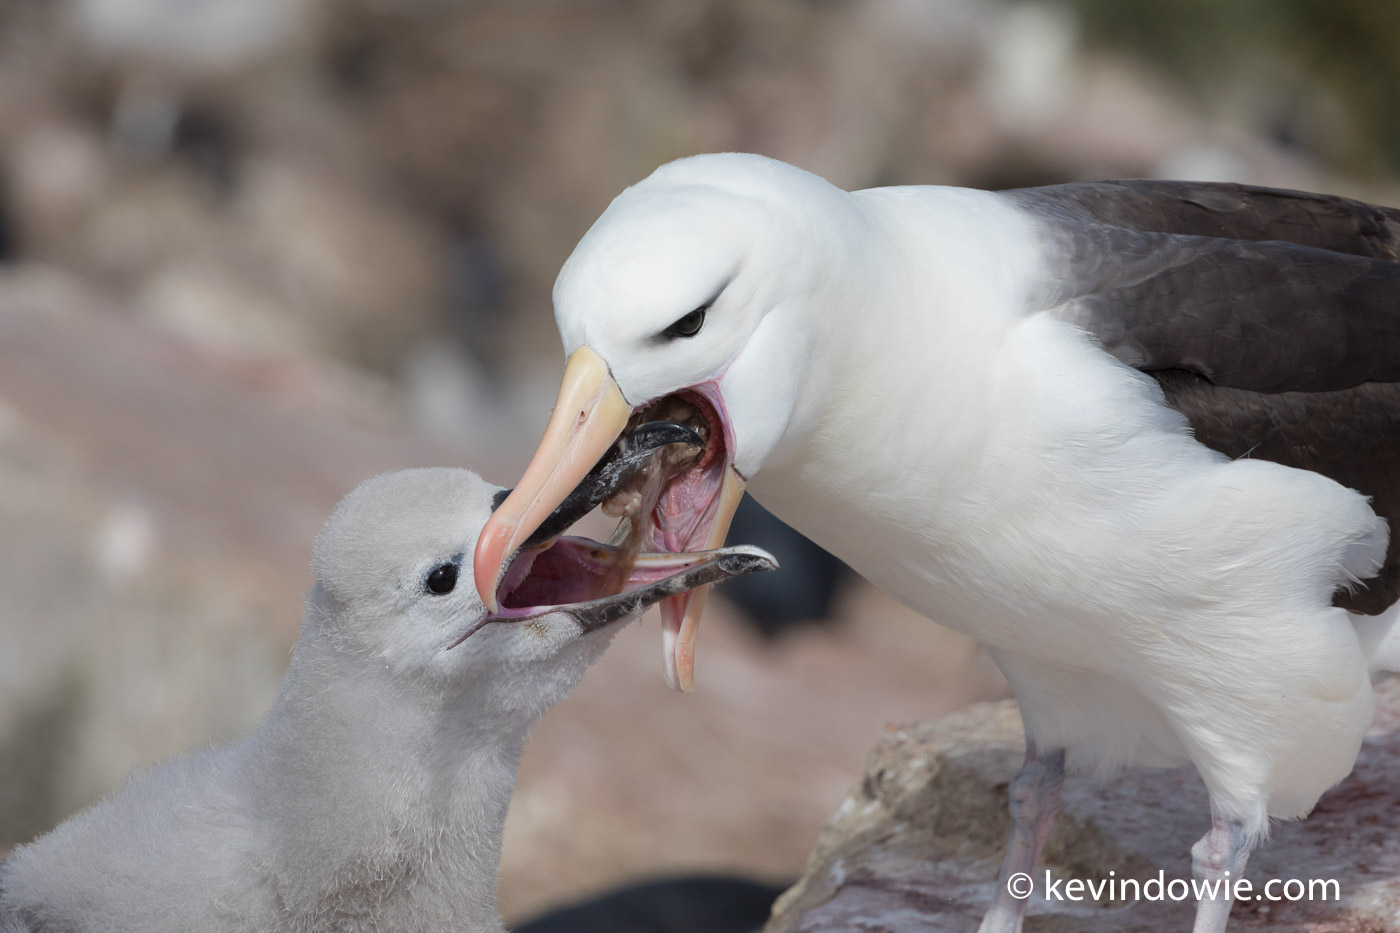 Feeding can be a messy business with the chick demanding food and the adult straining to regurgitate it.